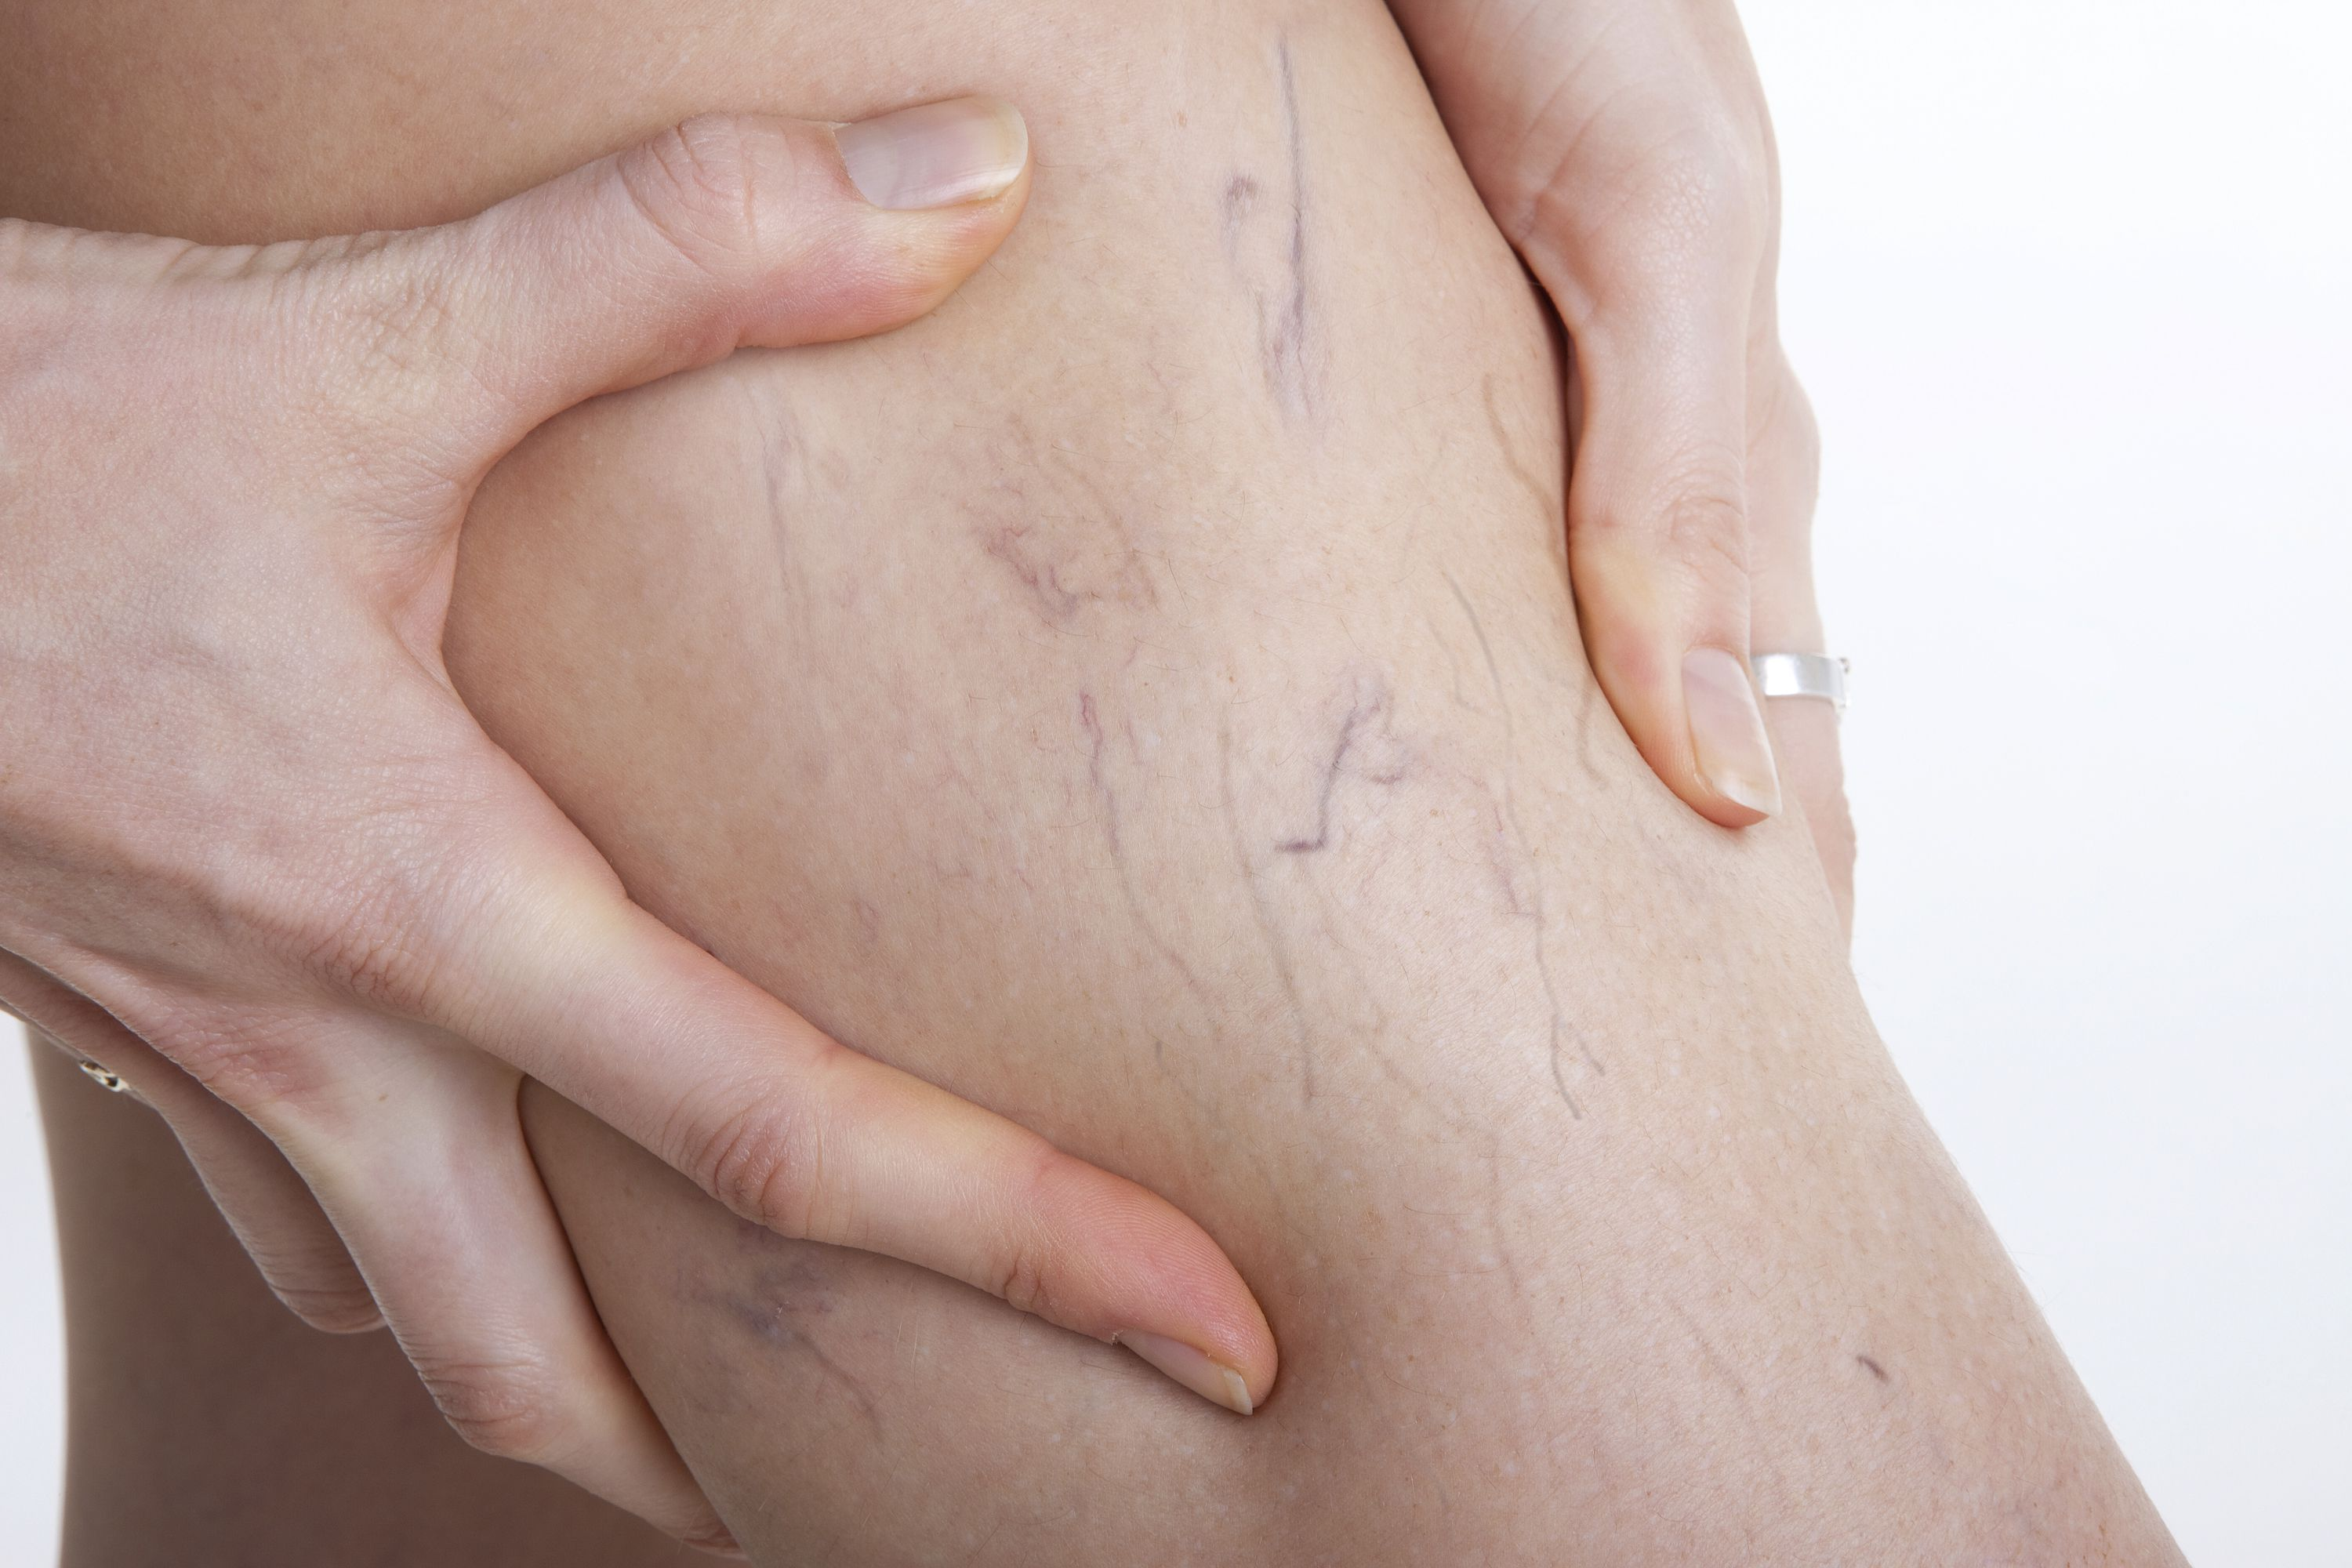 Soft Cellulite - Spider and Vericose Veins